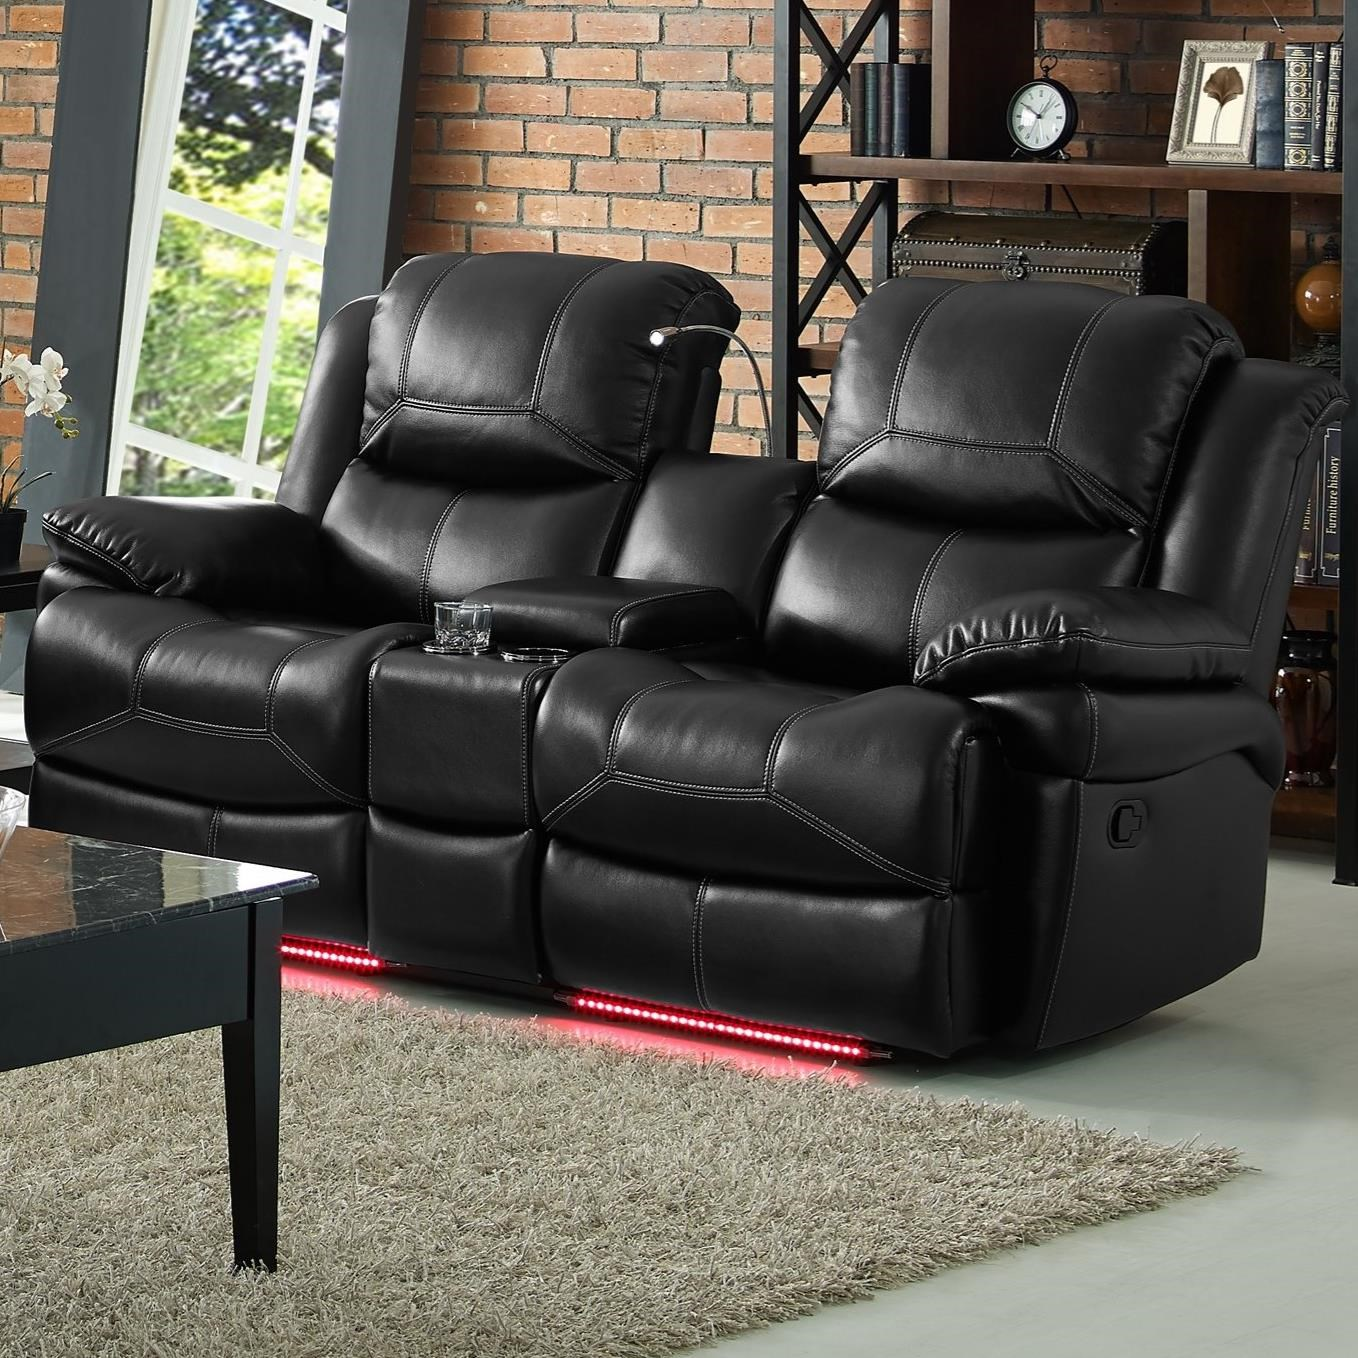 New Classic Flynn Reclining Power Console Loveseat - Item Number 22-2177-25P & New Classic Flynn Contemporary Reclining Power Loveseat with ... islam-shia.org